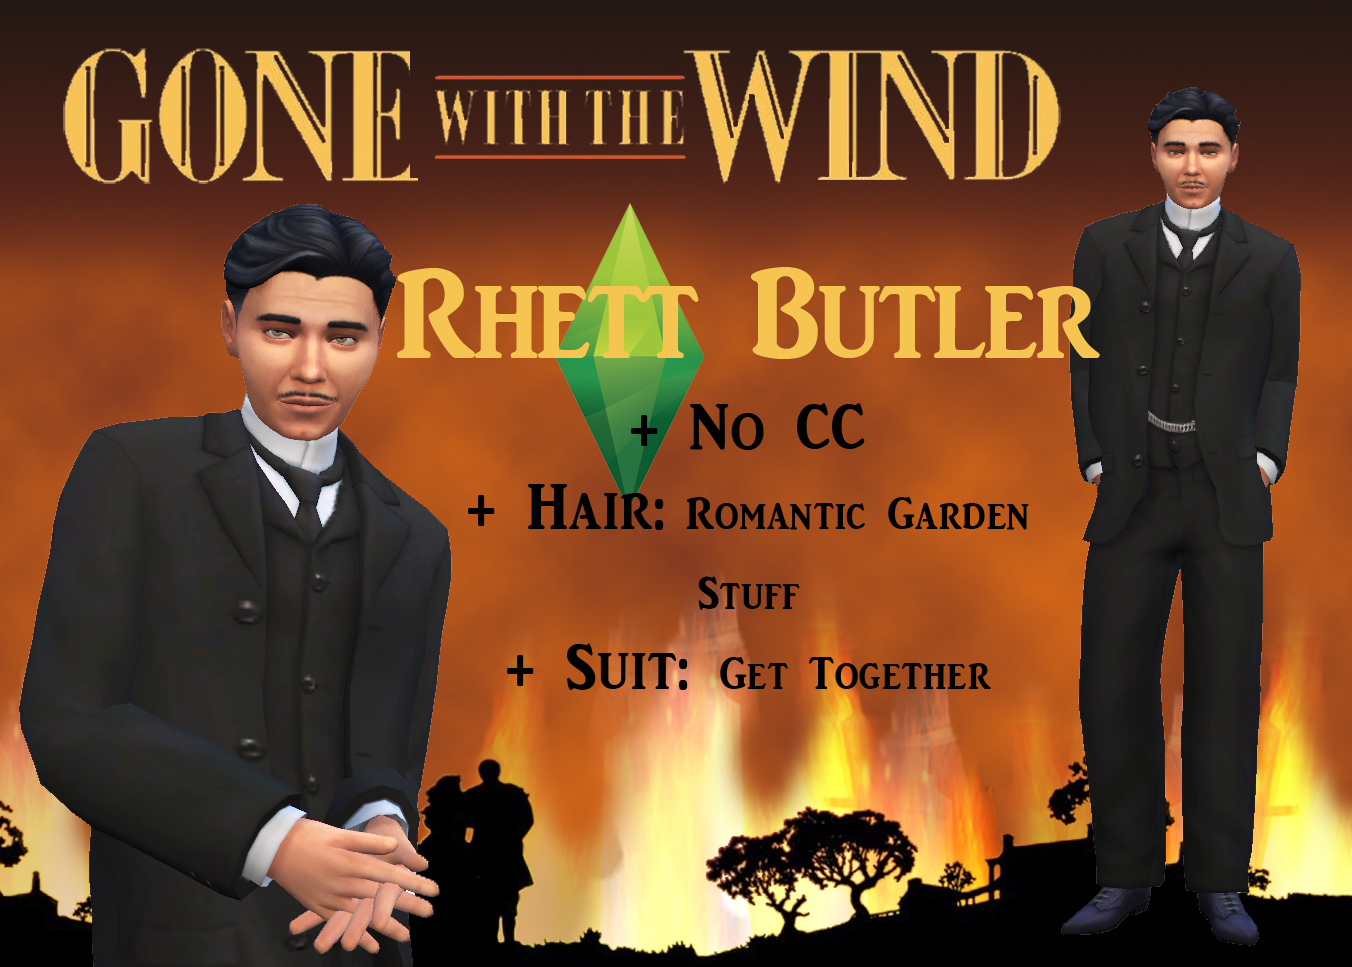 Ts4 scarlet rhett from gone with the wind history lover 39 s sims blog - Gone with the wind download ...